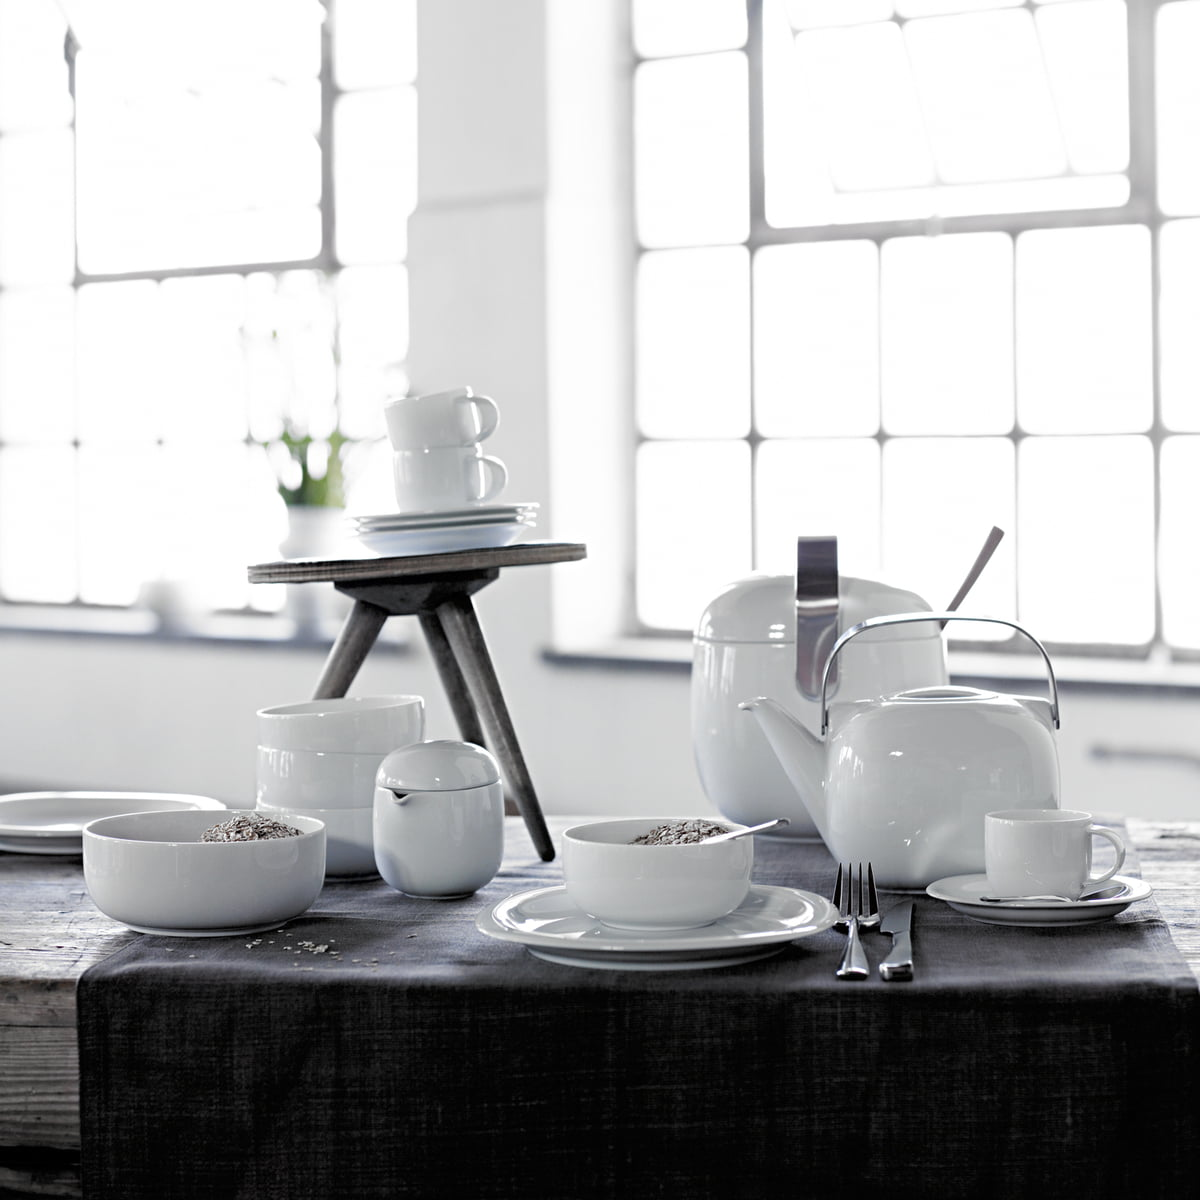 service de table suomi de rosenthal dans l 39 e boutique design. Black Bedroom Furniture Sets. Home Design Ideas